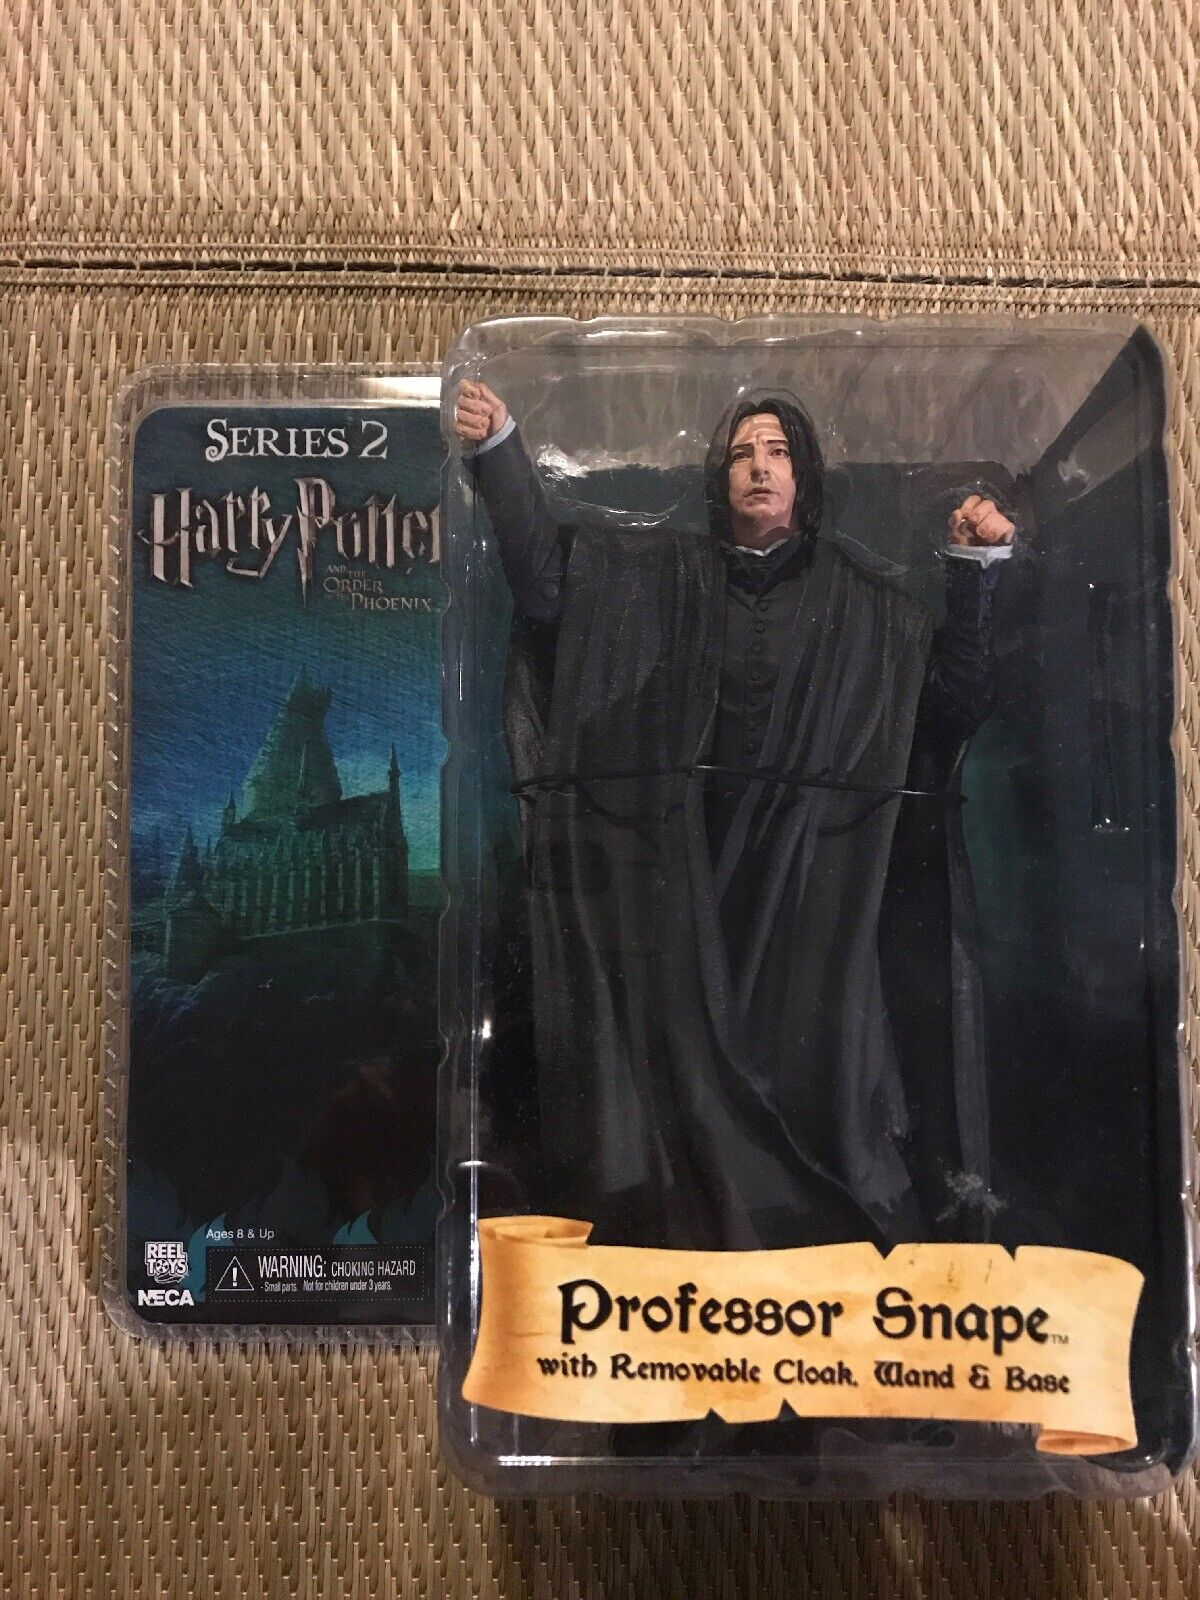 Neca Reel giocattoli Harry Potter series 2 Professor Severus Snape RARE DAMAGED LOOSE.